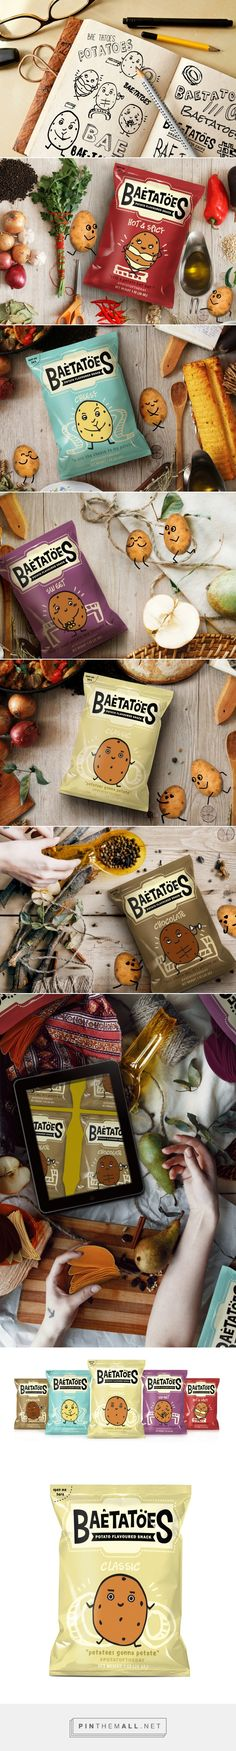 Baetatoes — The Dieline - Branding & Packaging Design. Chip Packaging, Packaging Snack, Food Packaging Design, Packaging Design Inspiration, Brand Packaging, Branding Design, Coffee Packaging, Bottle Packaging, Packaging Ideas